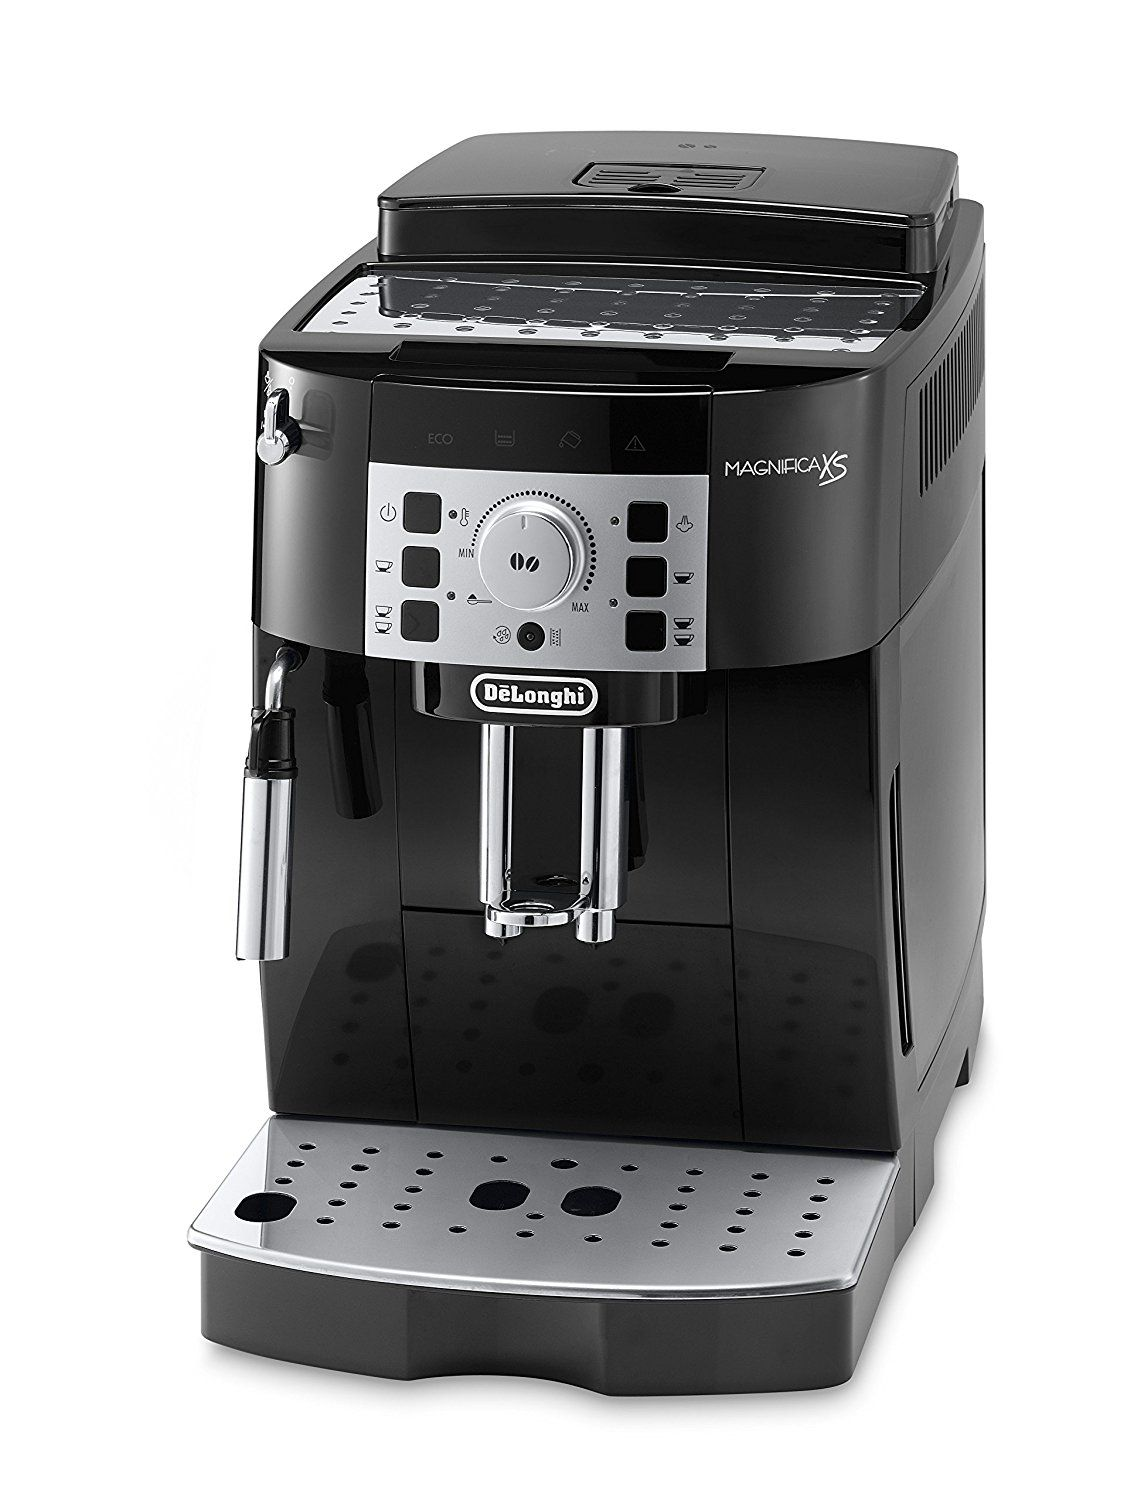 10 Modern Coffee Maker with Grinder Machines Review Find